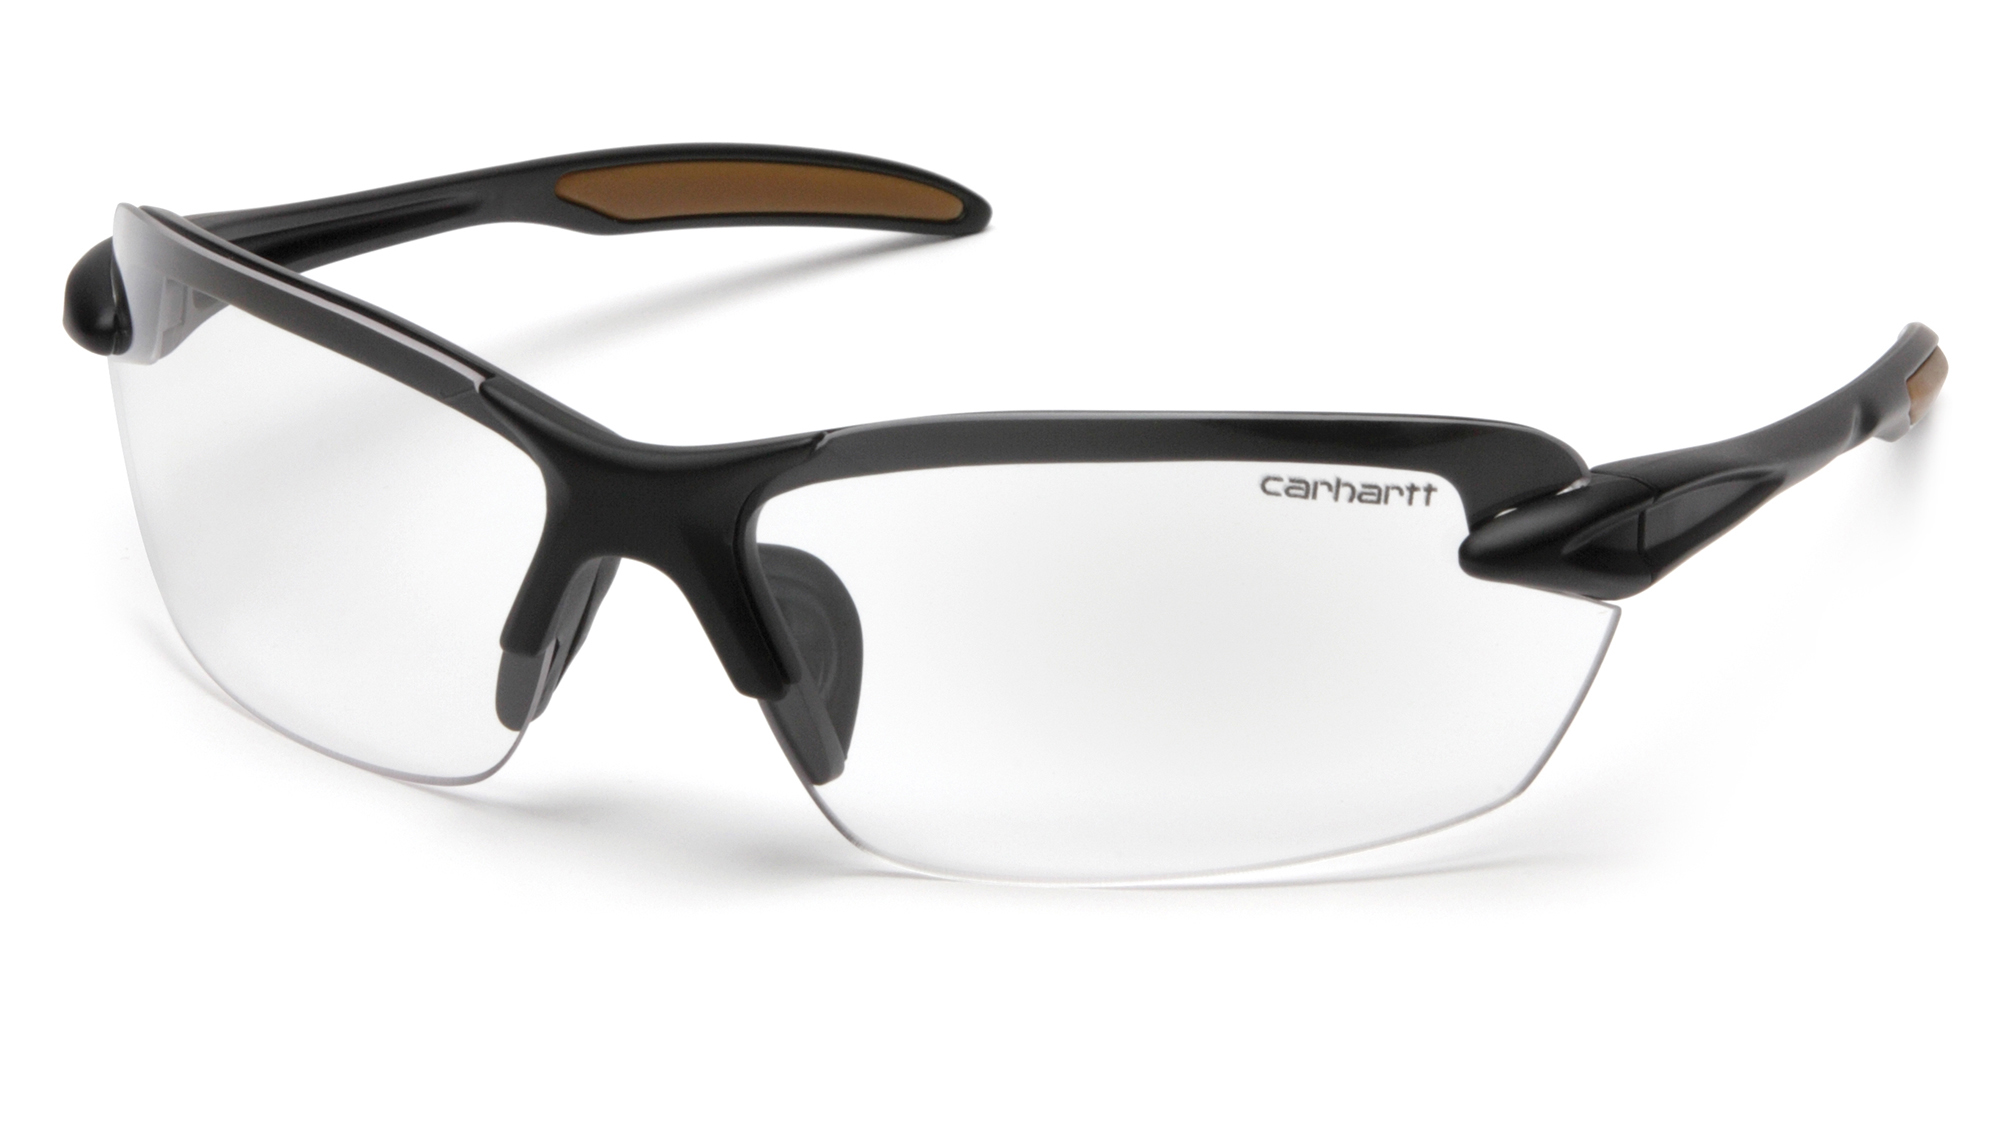 Carhartt Spokane Clear Lens Safety Glasses-